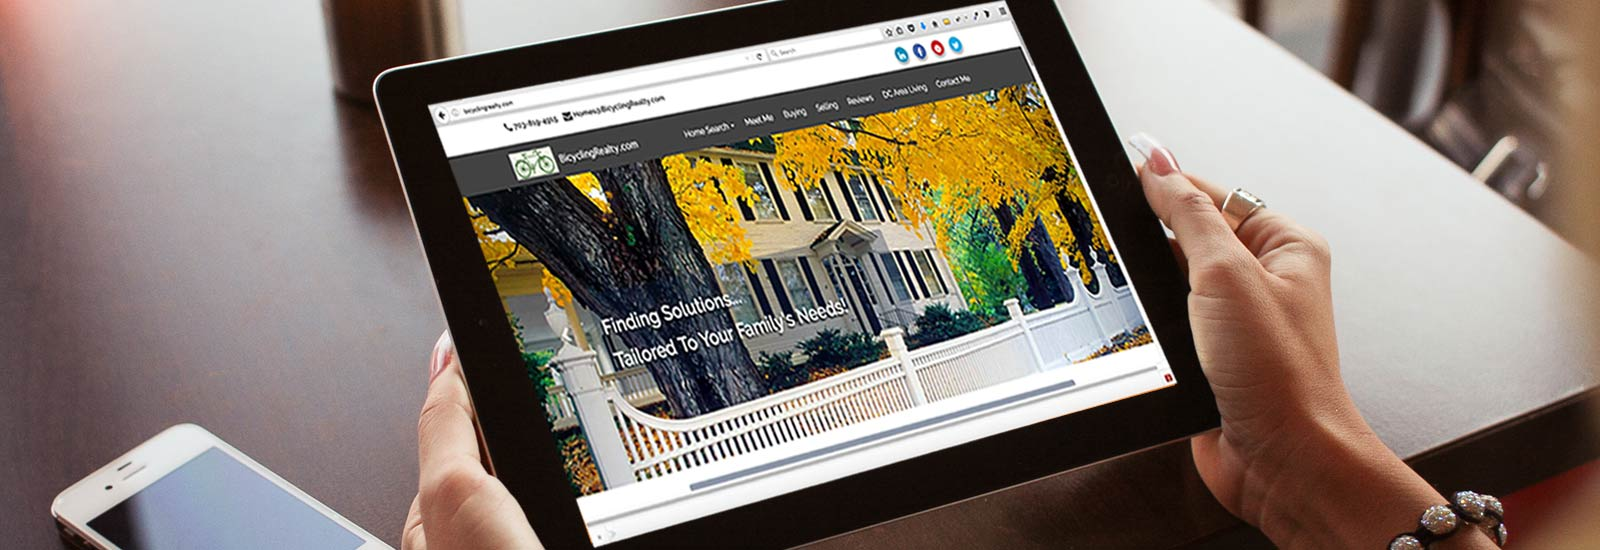 Contact Summit Web Design - Real Estate Website Design